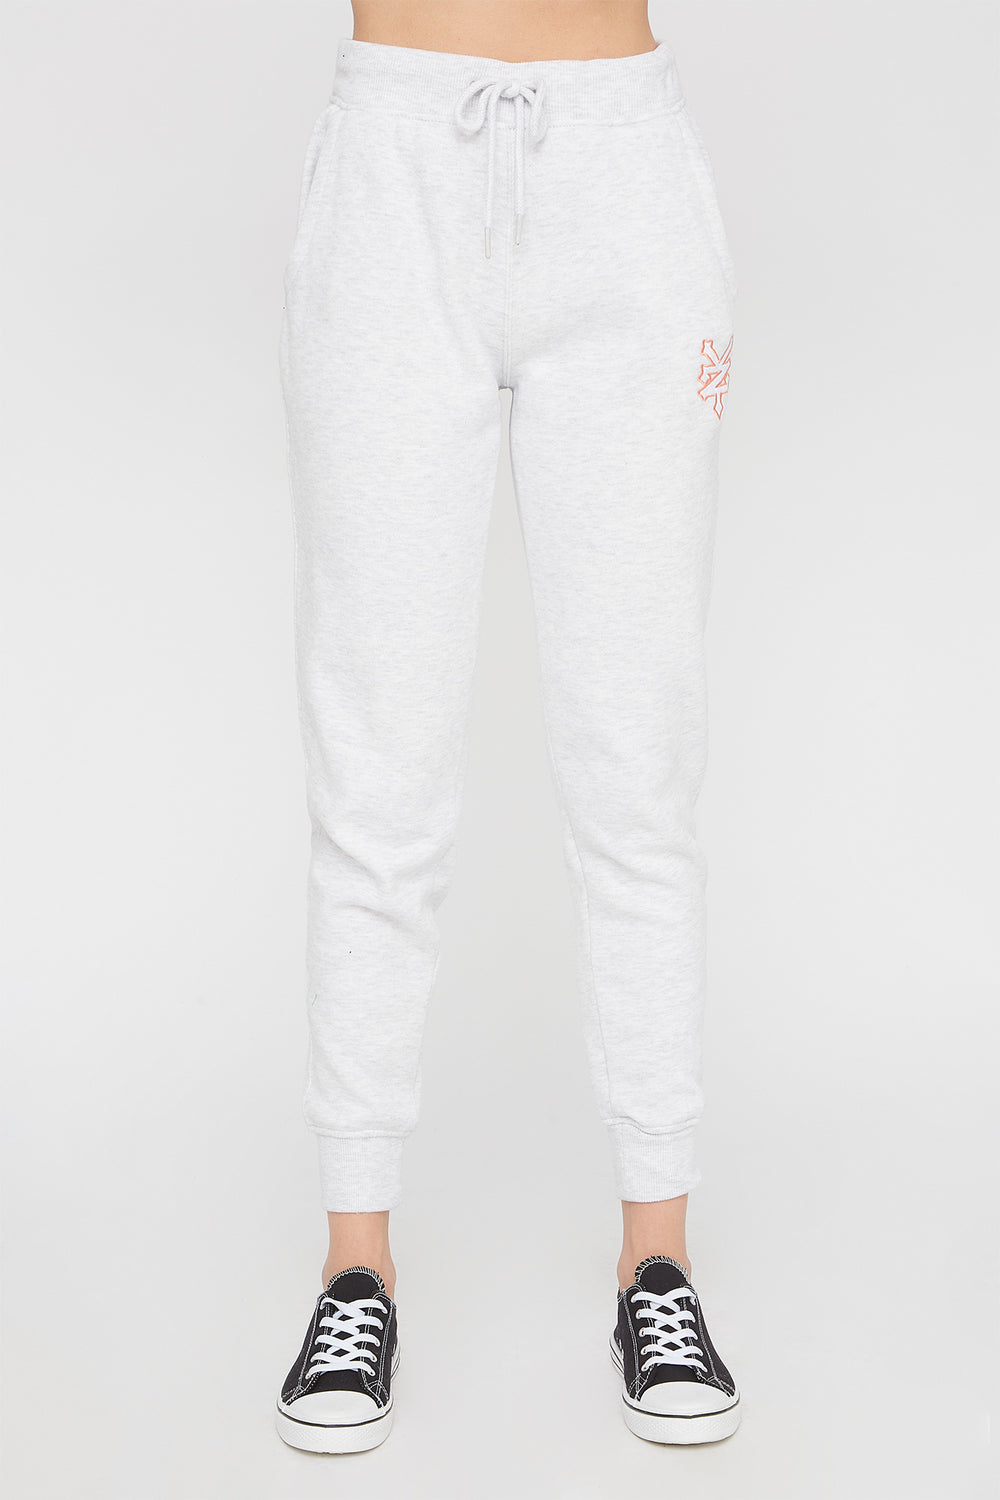 Zoo York Womens Embroidered Pastel Logo Jogger Oatmeal